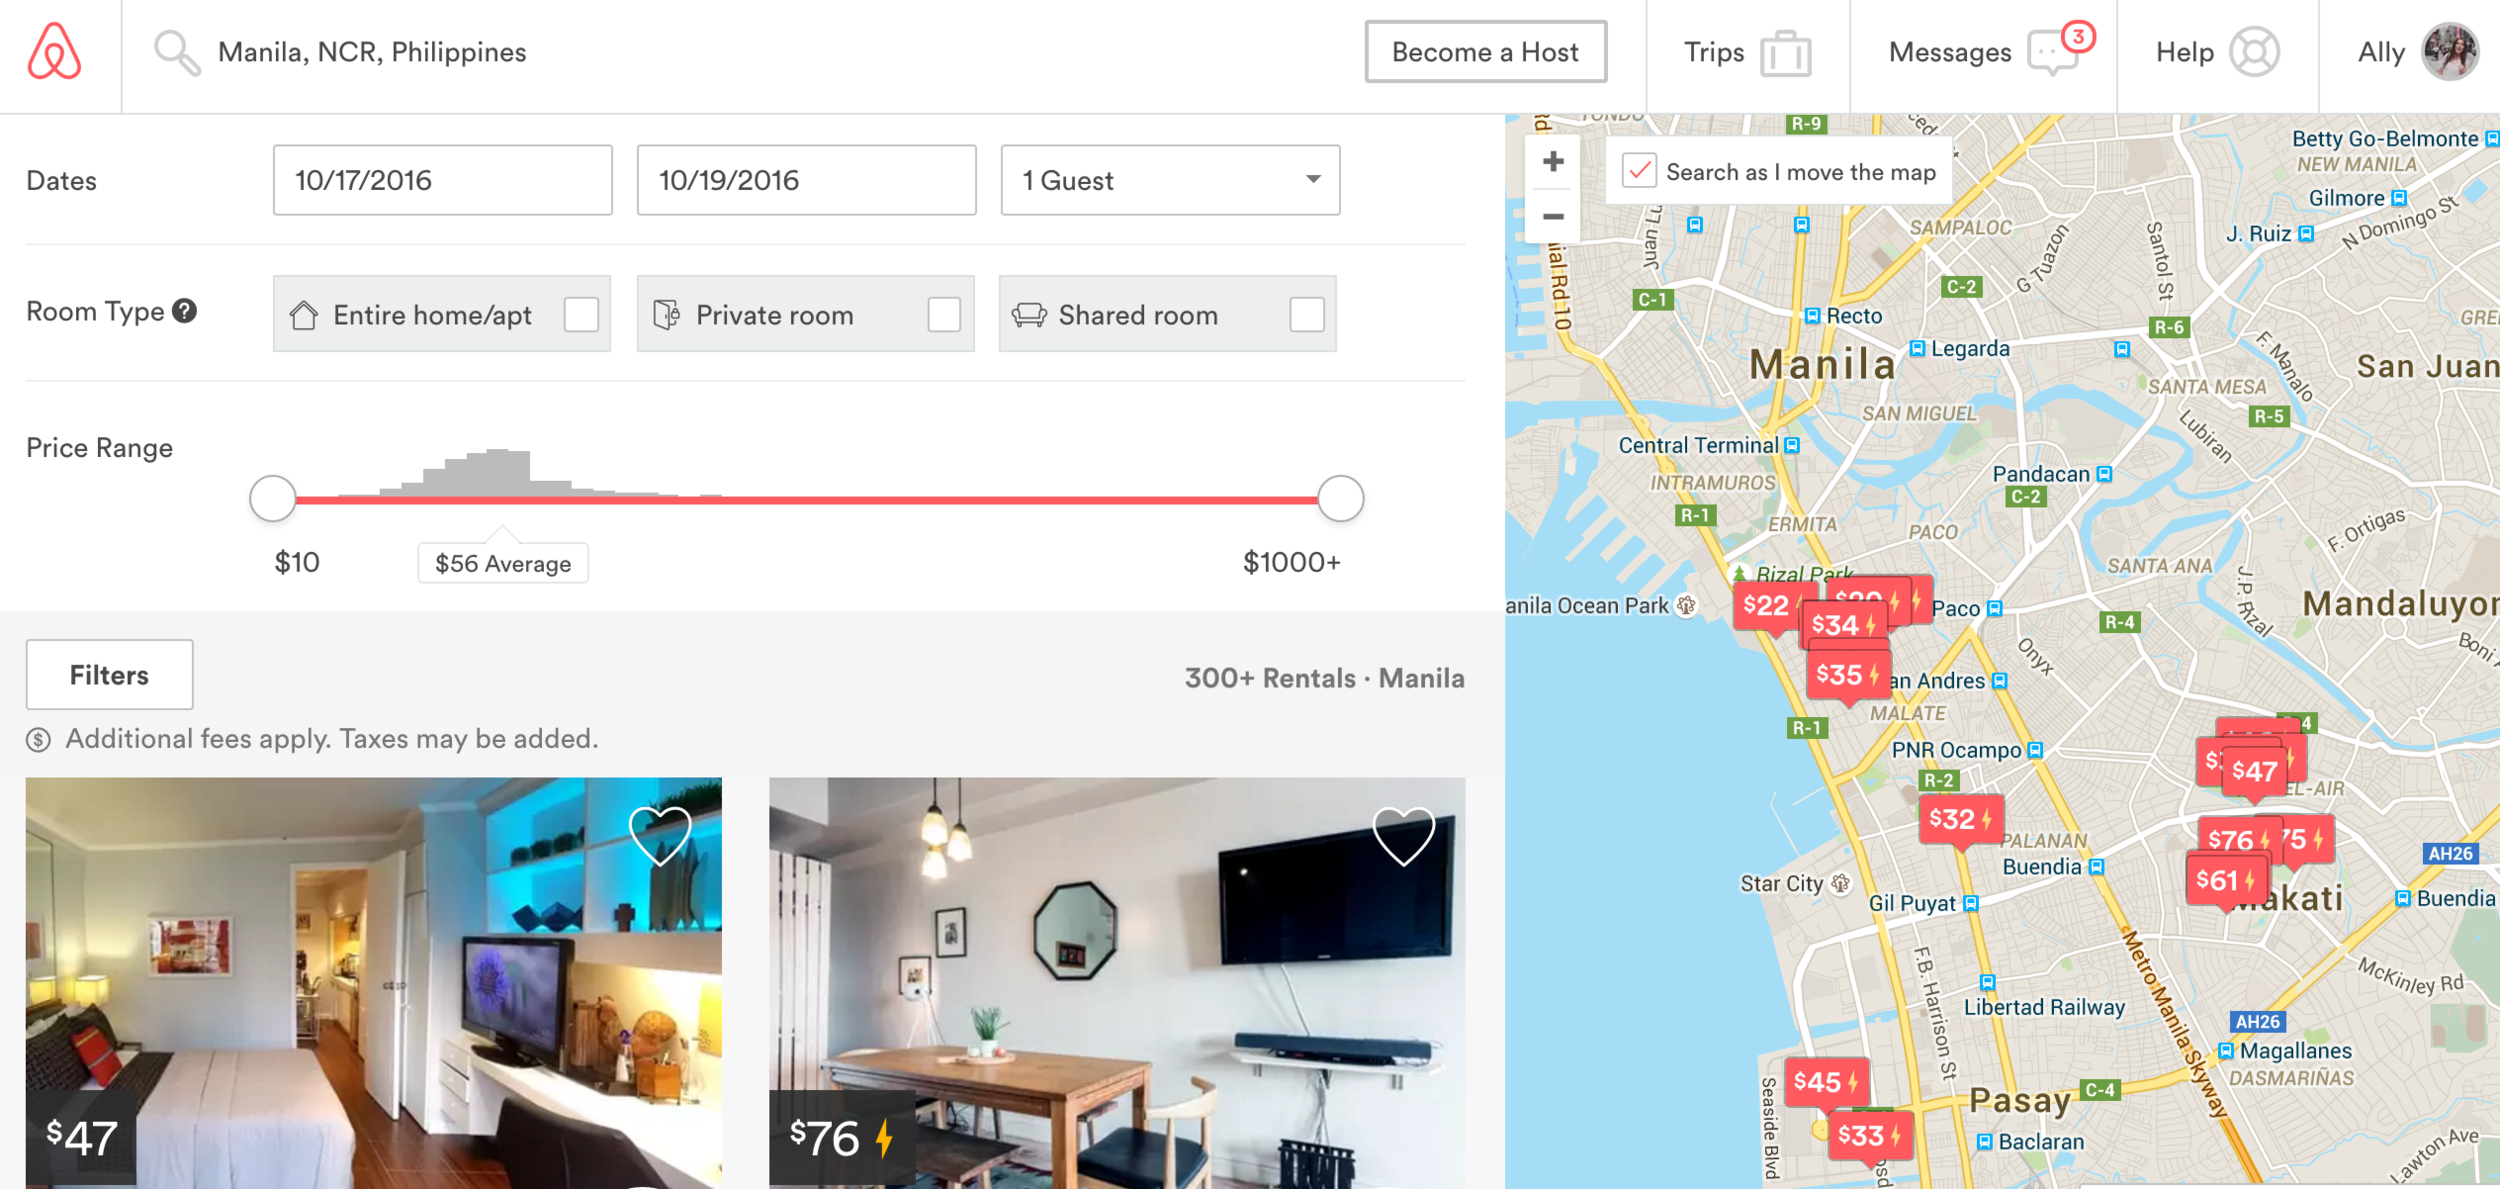 The search function and map make finding a place really easy - this screenshot shows some Airbnbs in Manila, Philippines